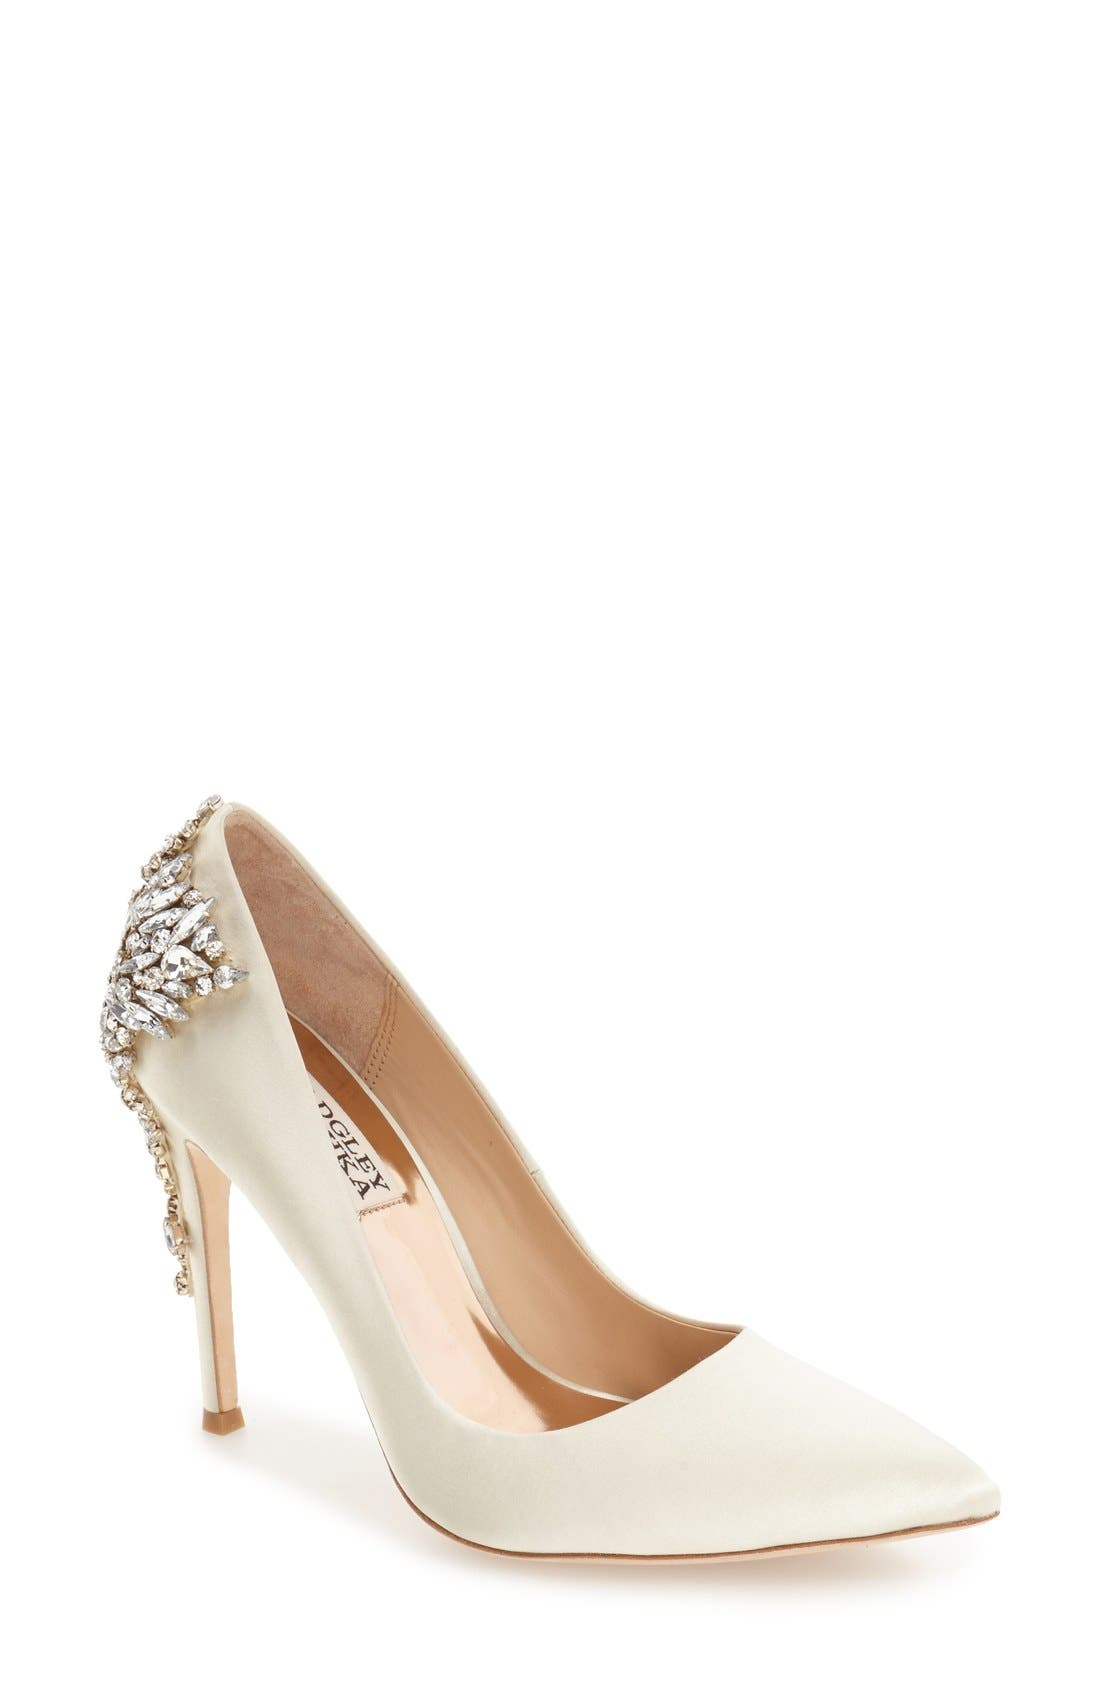 BADGLEY MISCHKA COLLECTION, Badgley Mischka 'Gorgeous' Crystal Embellished Pointy Toe Pump, Main thumbnail 1, color, IVORY SATIN